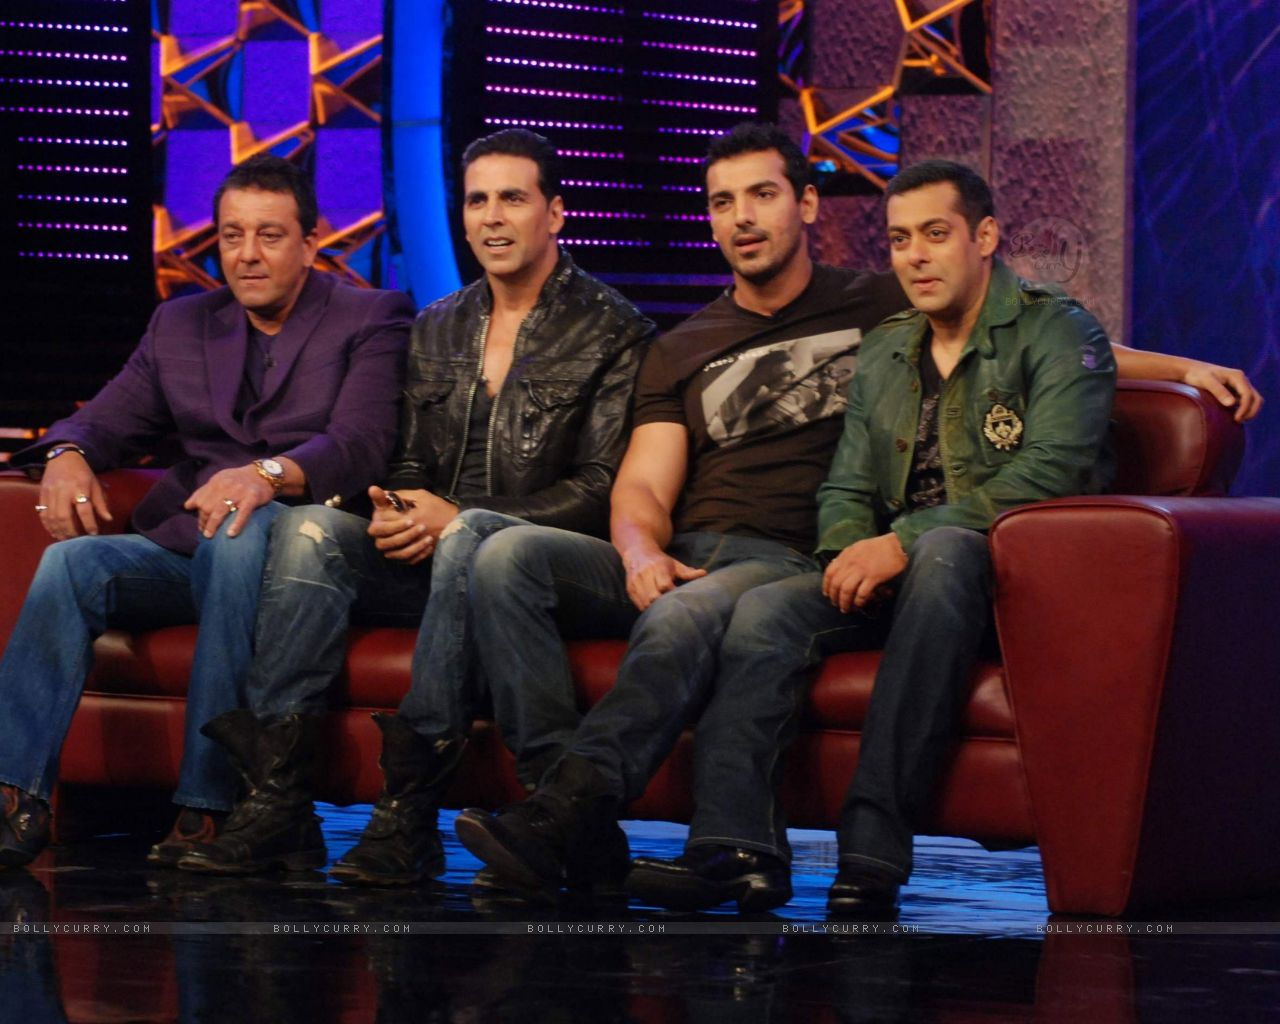 170568-akshay-and-john-promote-film-desi-boyz-on-the-sets-of-bigg-boss.jpg